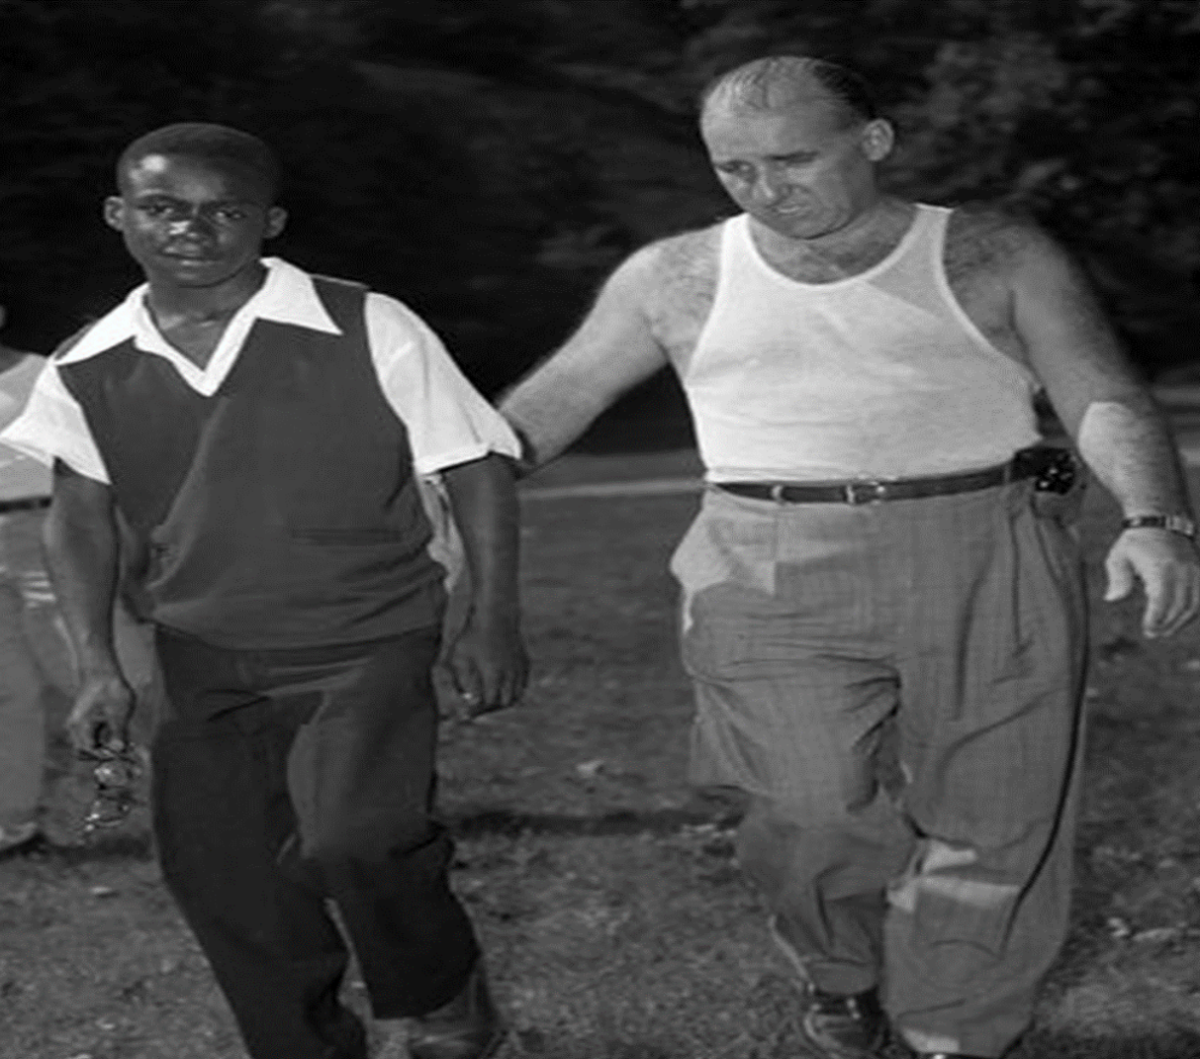 Robert Peebles searching Highbridge Park with Detective Francis McGinty for the gun. This is probably the area behind Highbridge Pool a mile north of the Polo Grounds.